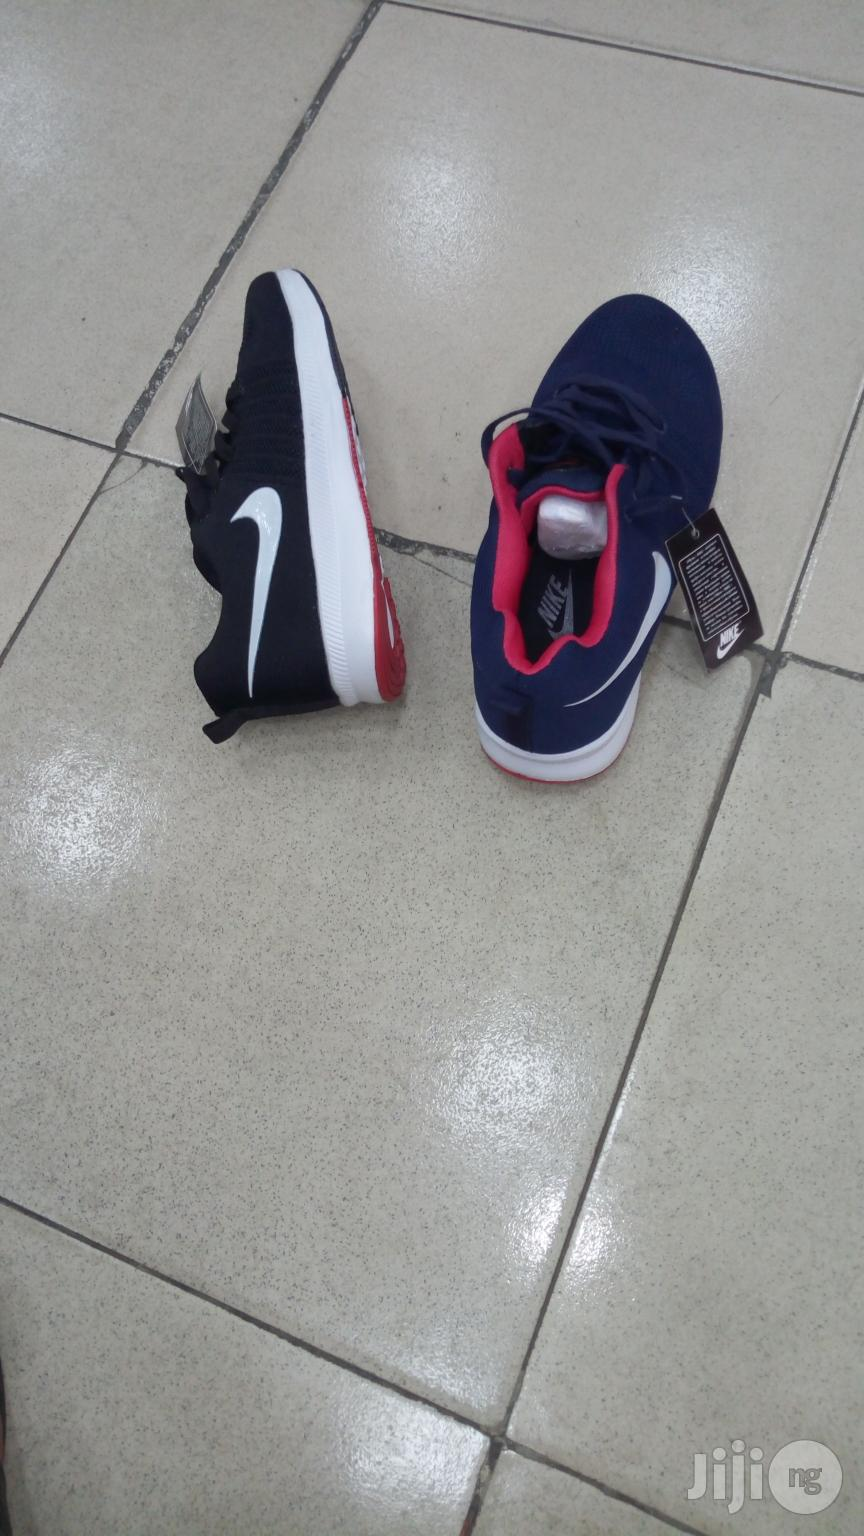 Jogging Canvas Shoe | Shoes for sale in Surulere, Lagos State, Nigeria